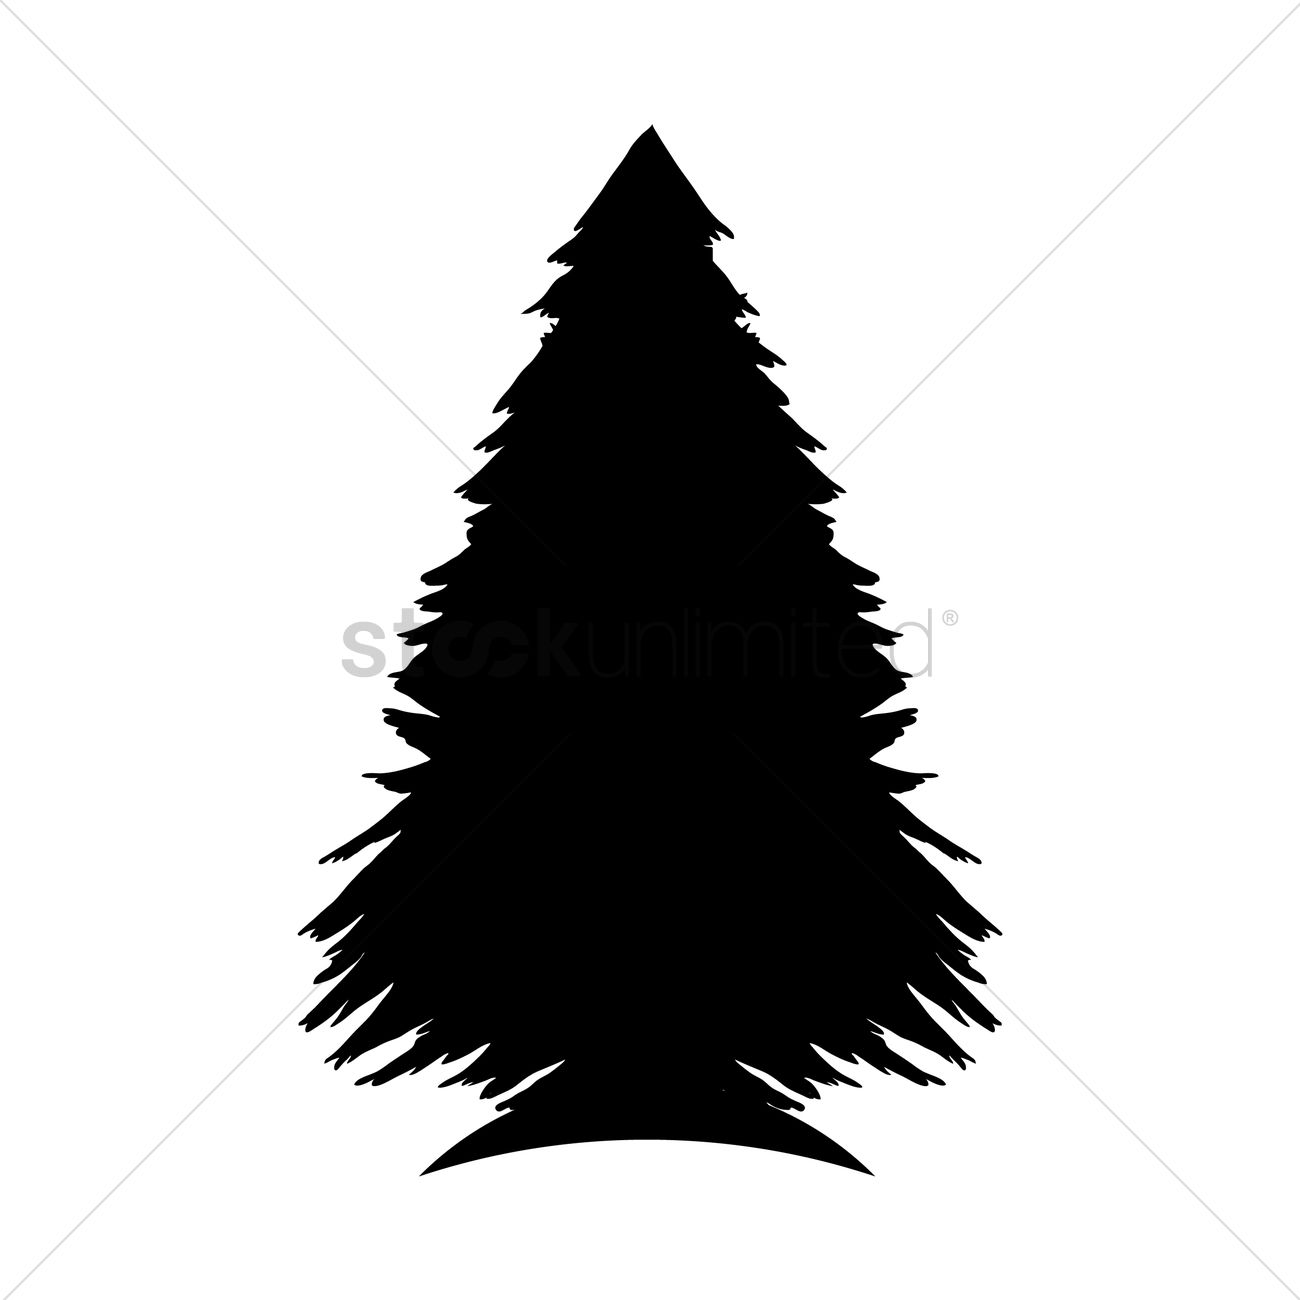 1300x1300 Pine Tree Silhouette Vector Image